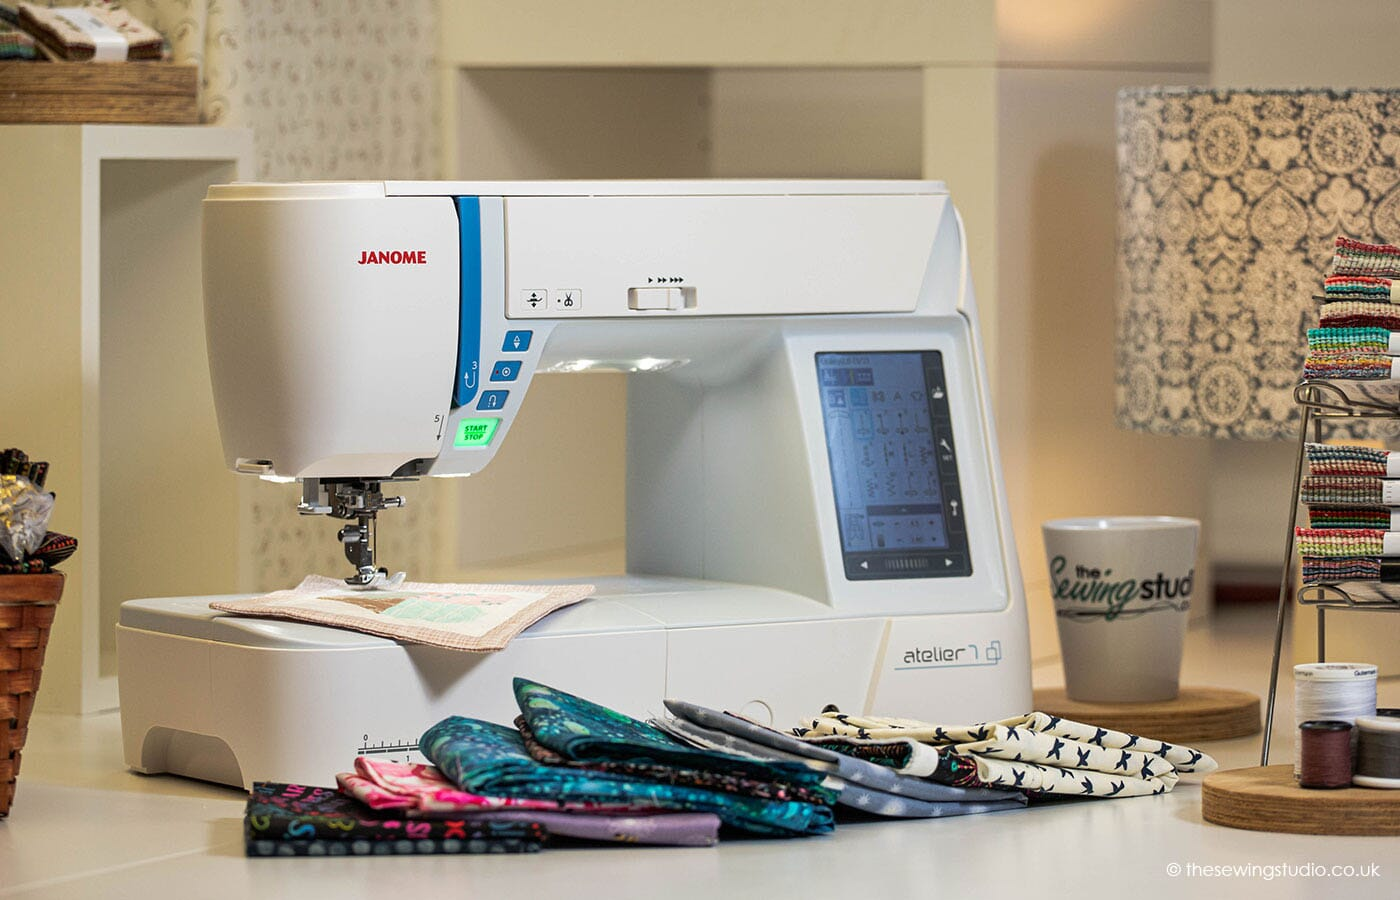 Janome Atelier 7 Sewing Machine in a Sewing Room